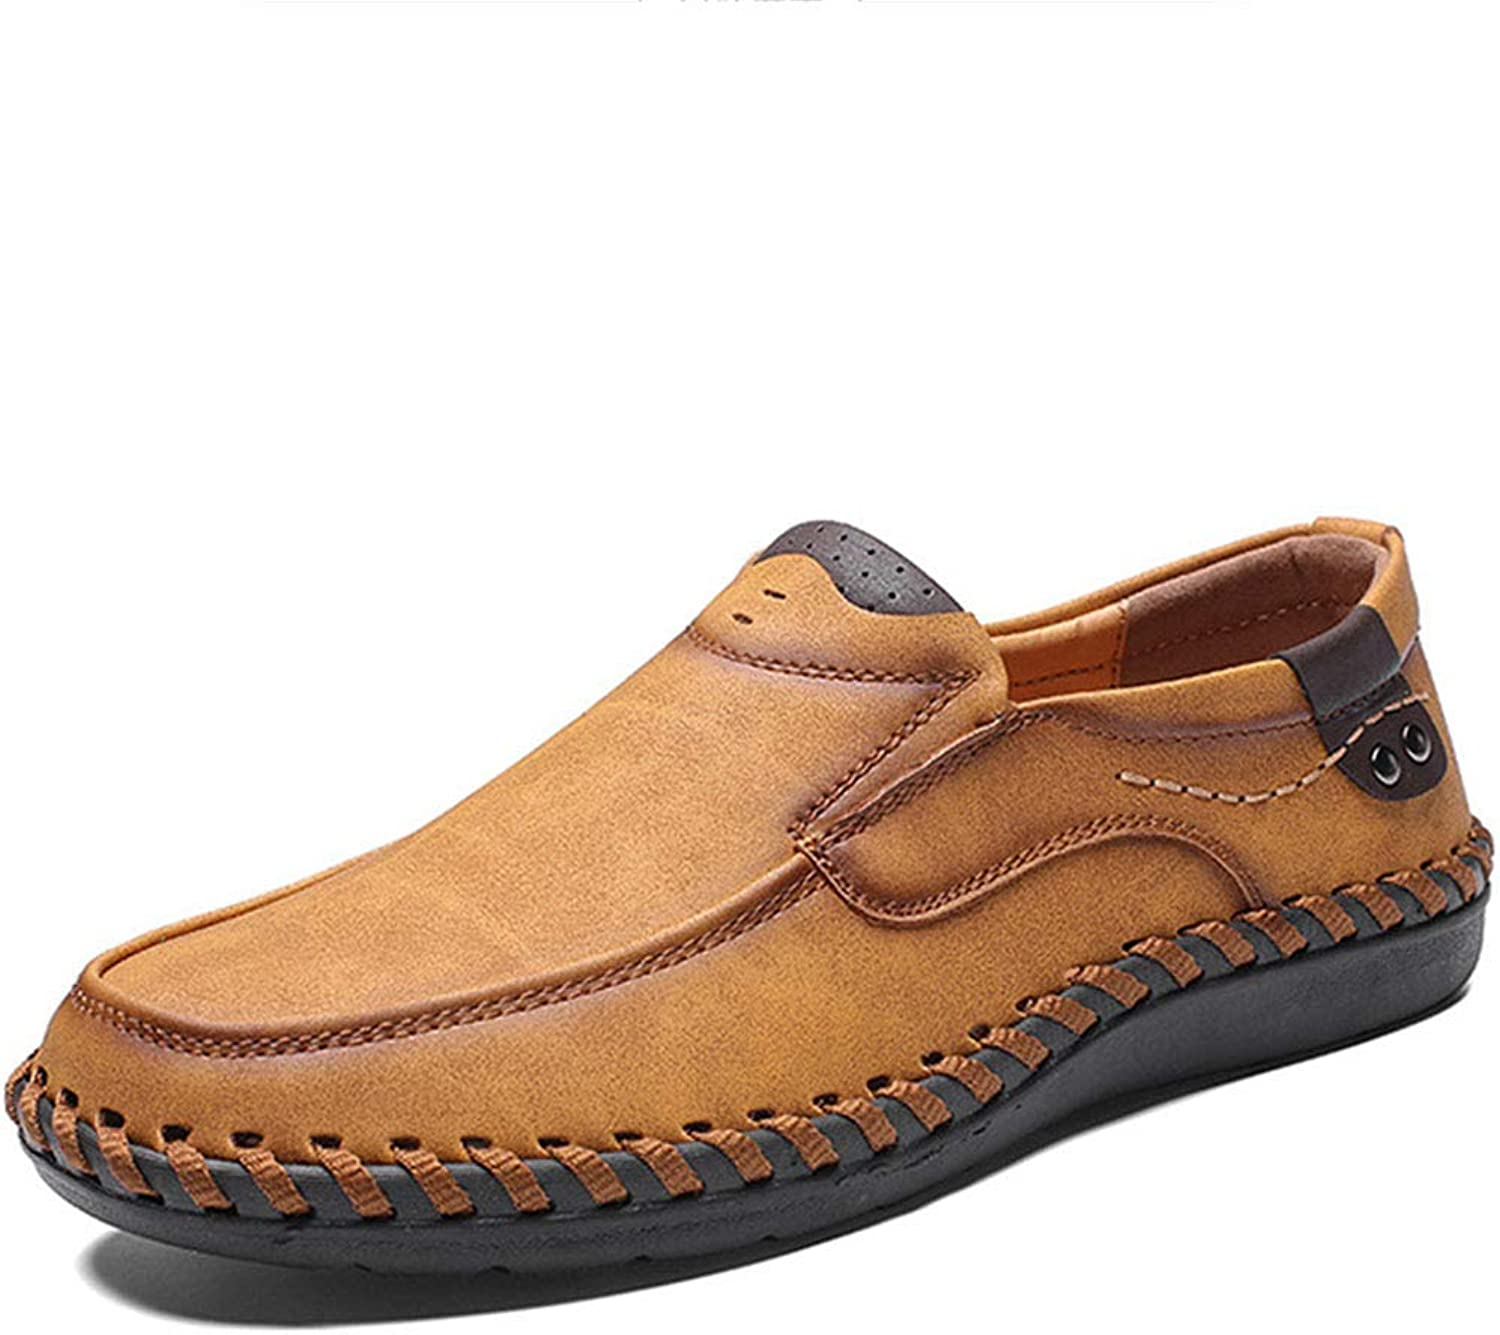 Men's Leather shoes Autumn Driving shoes Handmade Casual shoes Wild Peas shoes